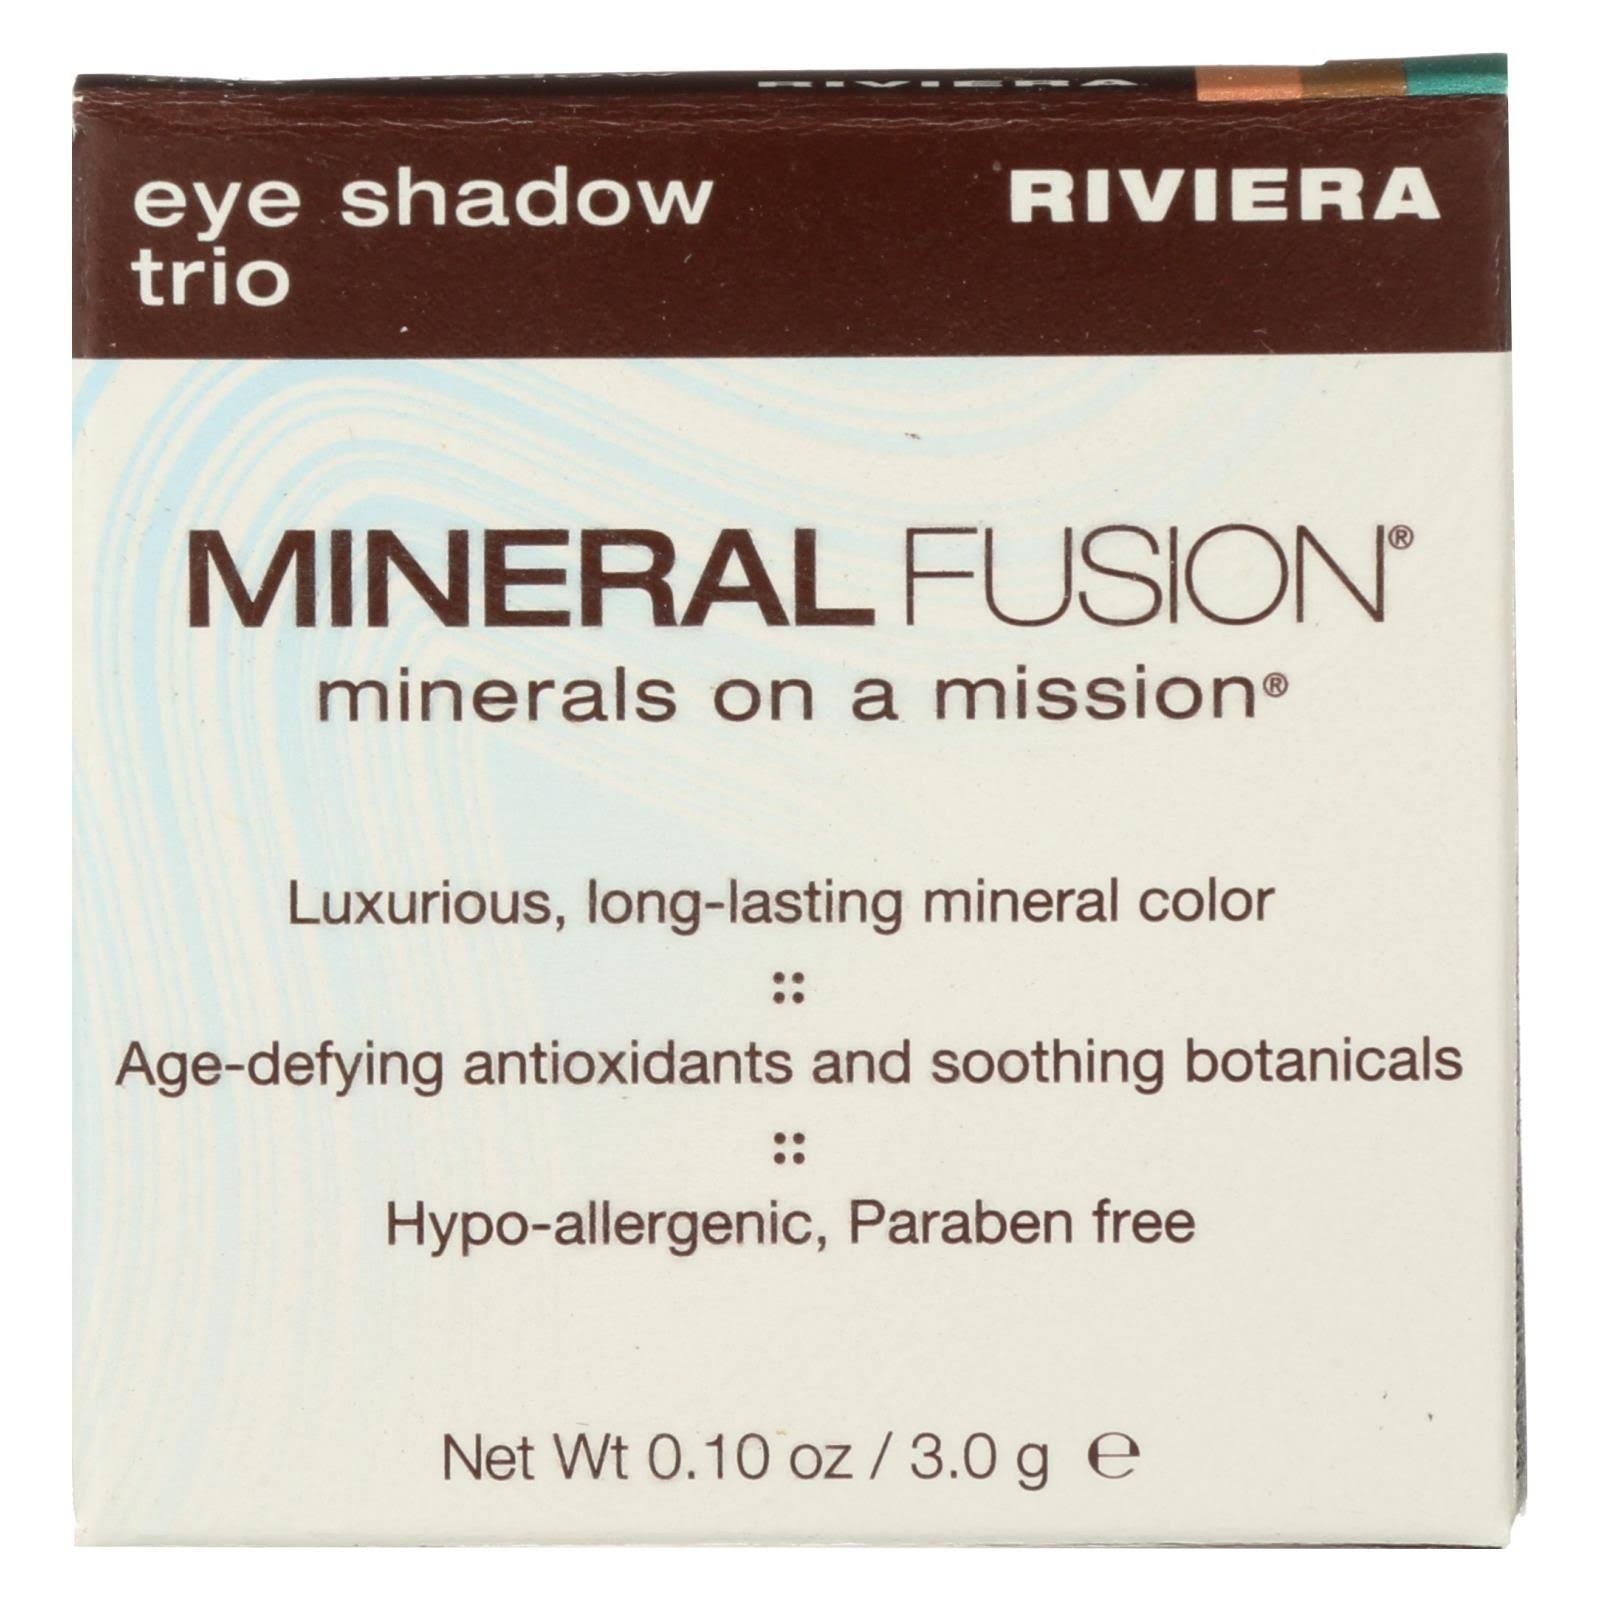 Mineral Fusion Eye Shadow Trio - Riviera, 0.1 oz